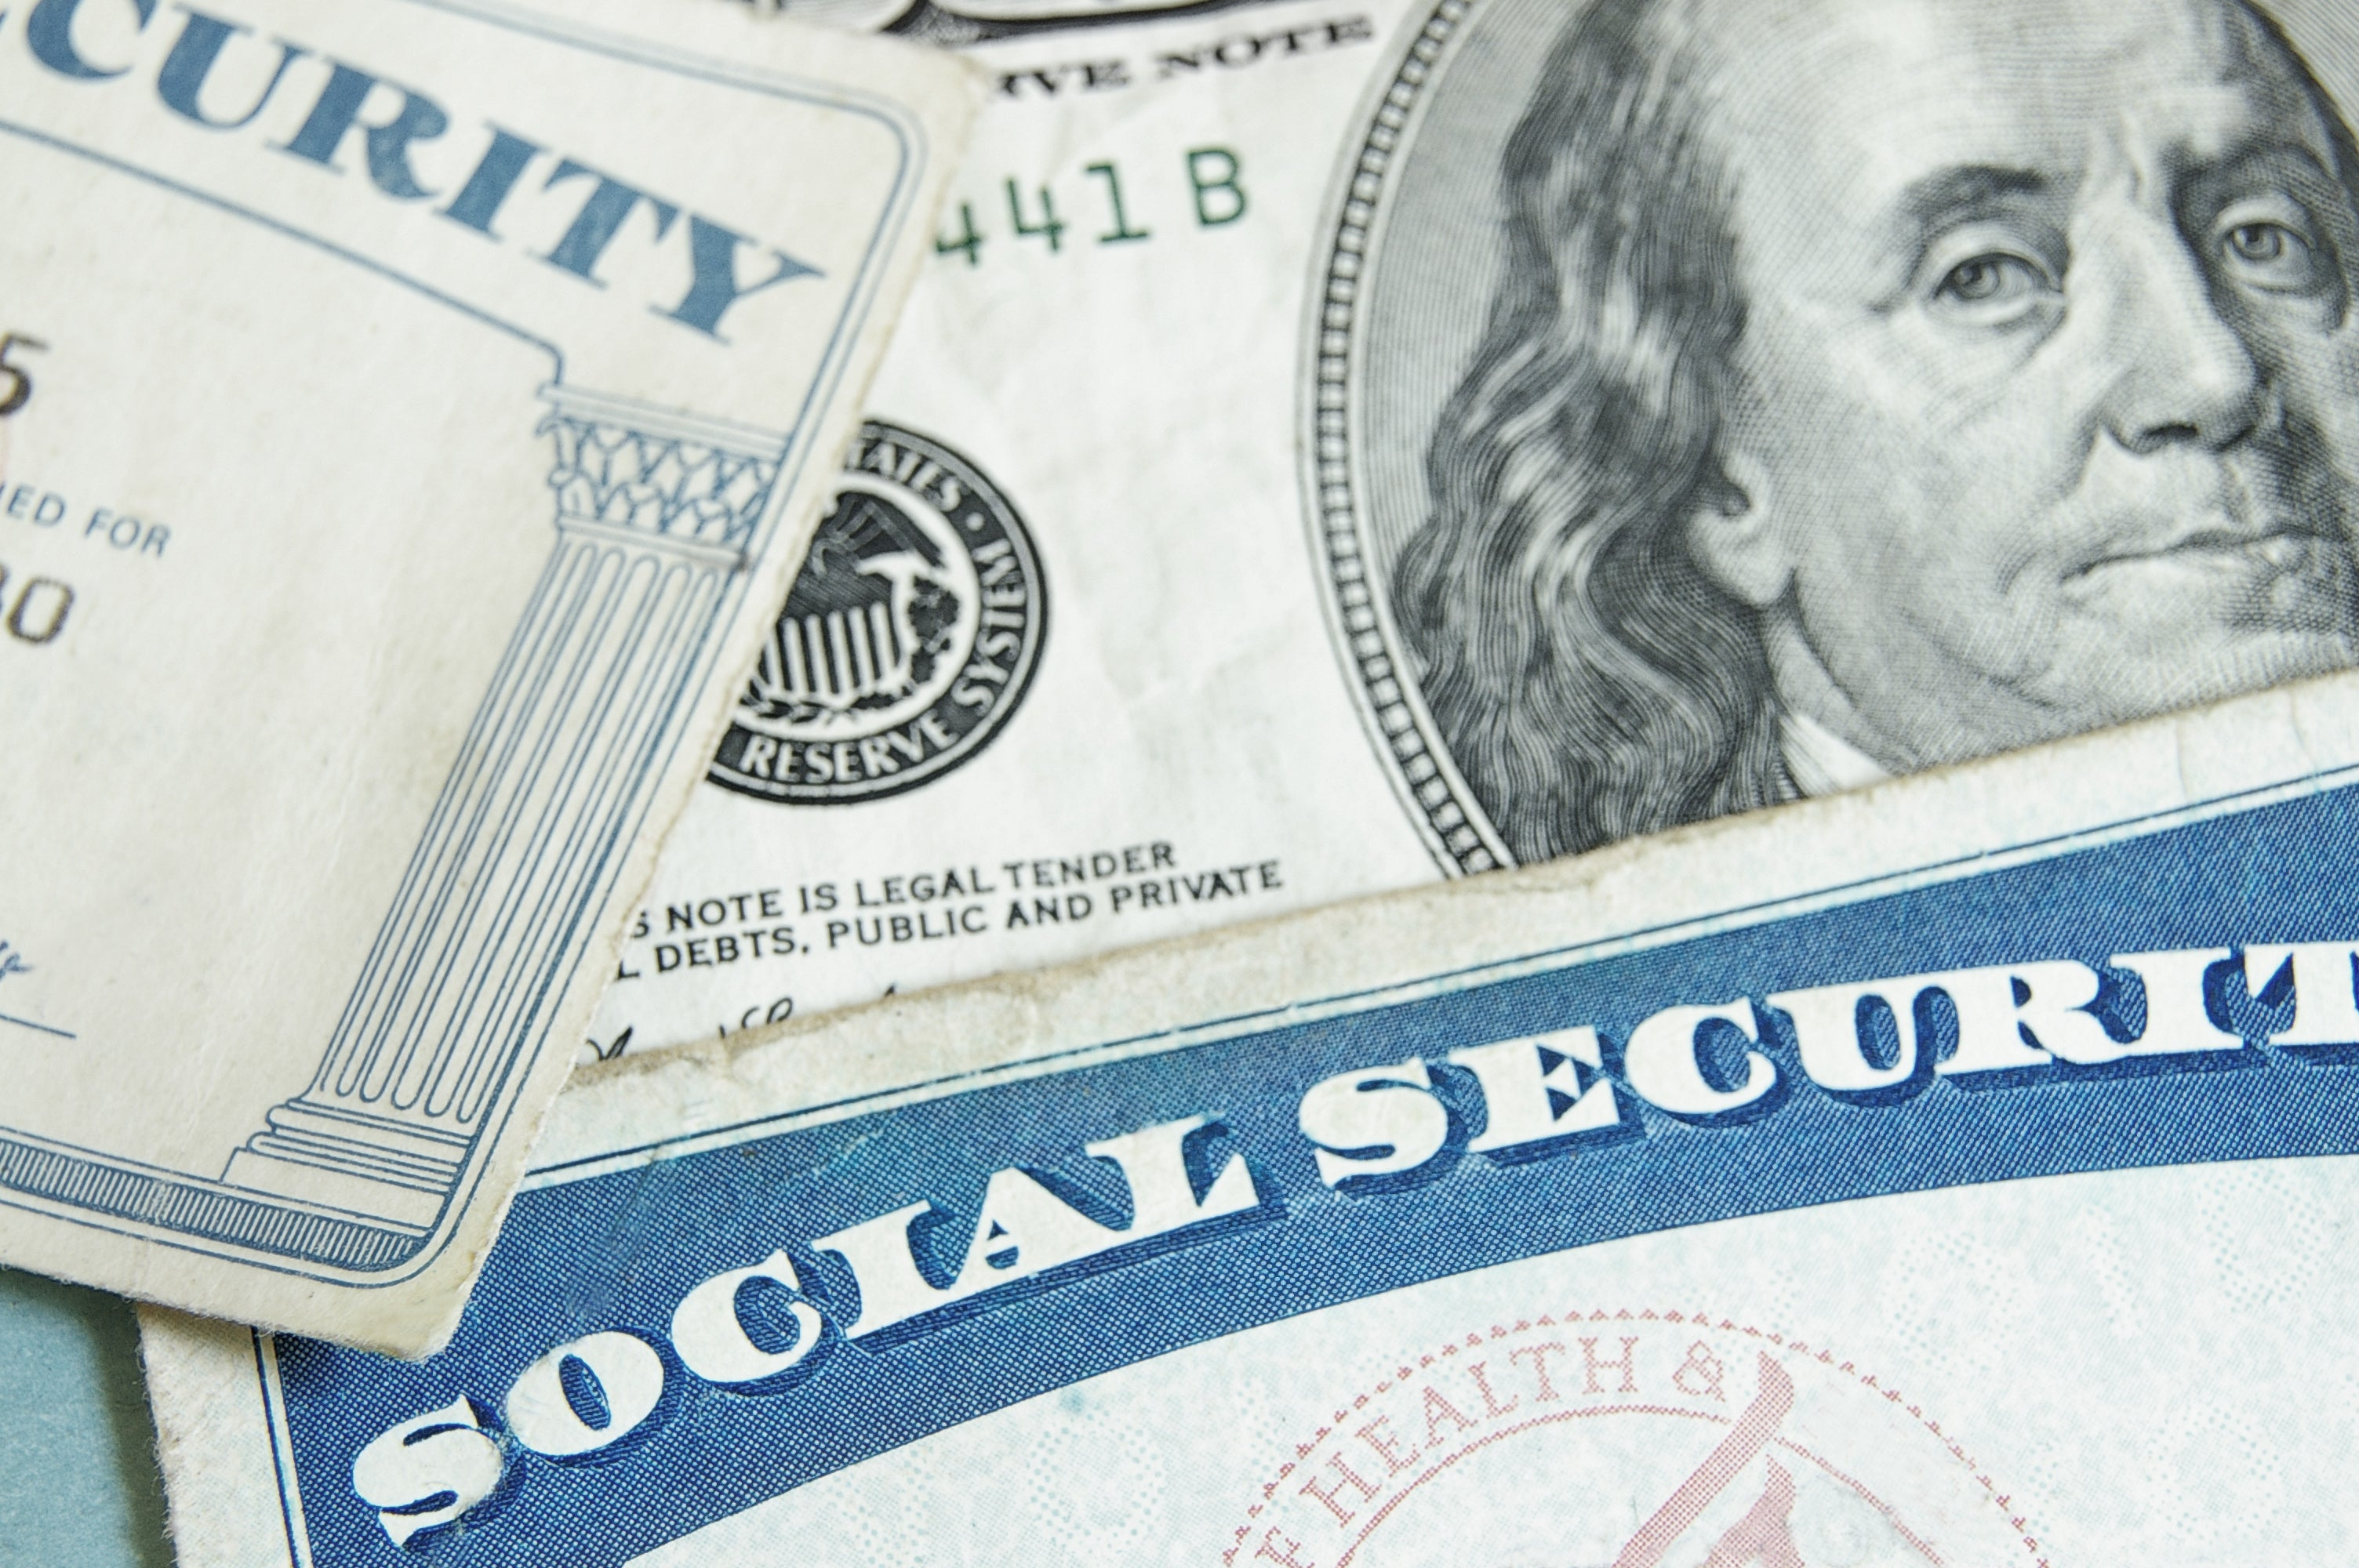 Warren Buffett Pays This Much Into Social Security Each Year